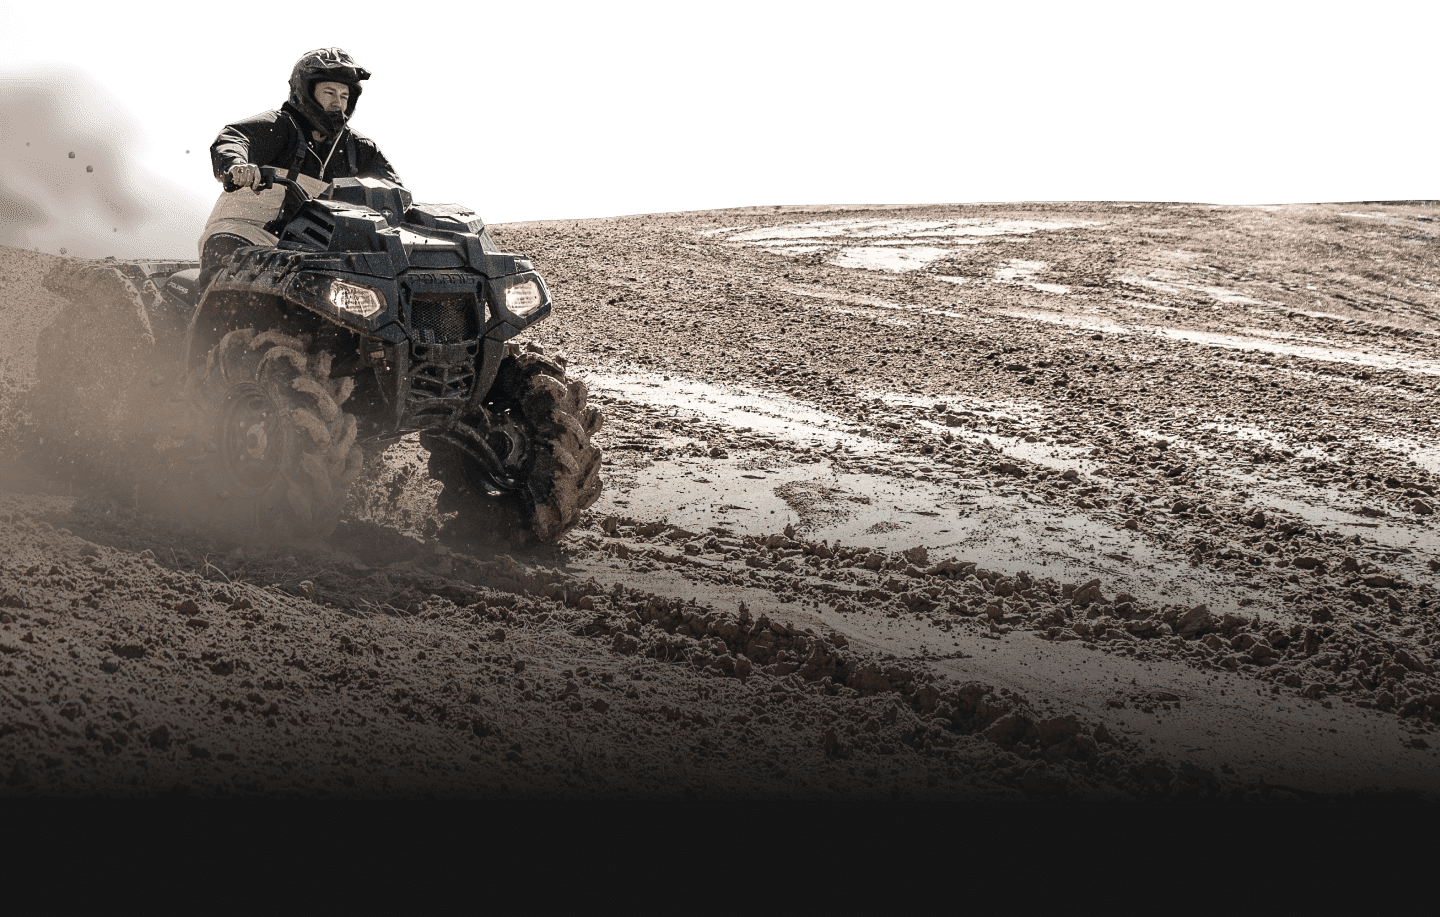 Man riding an ATV in the mud